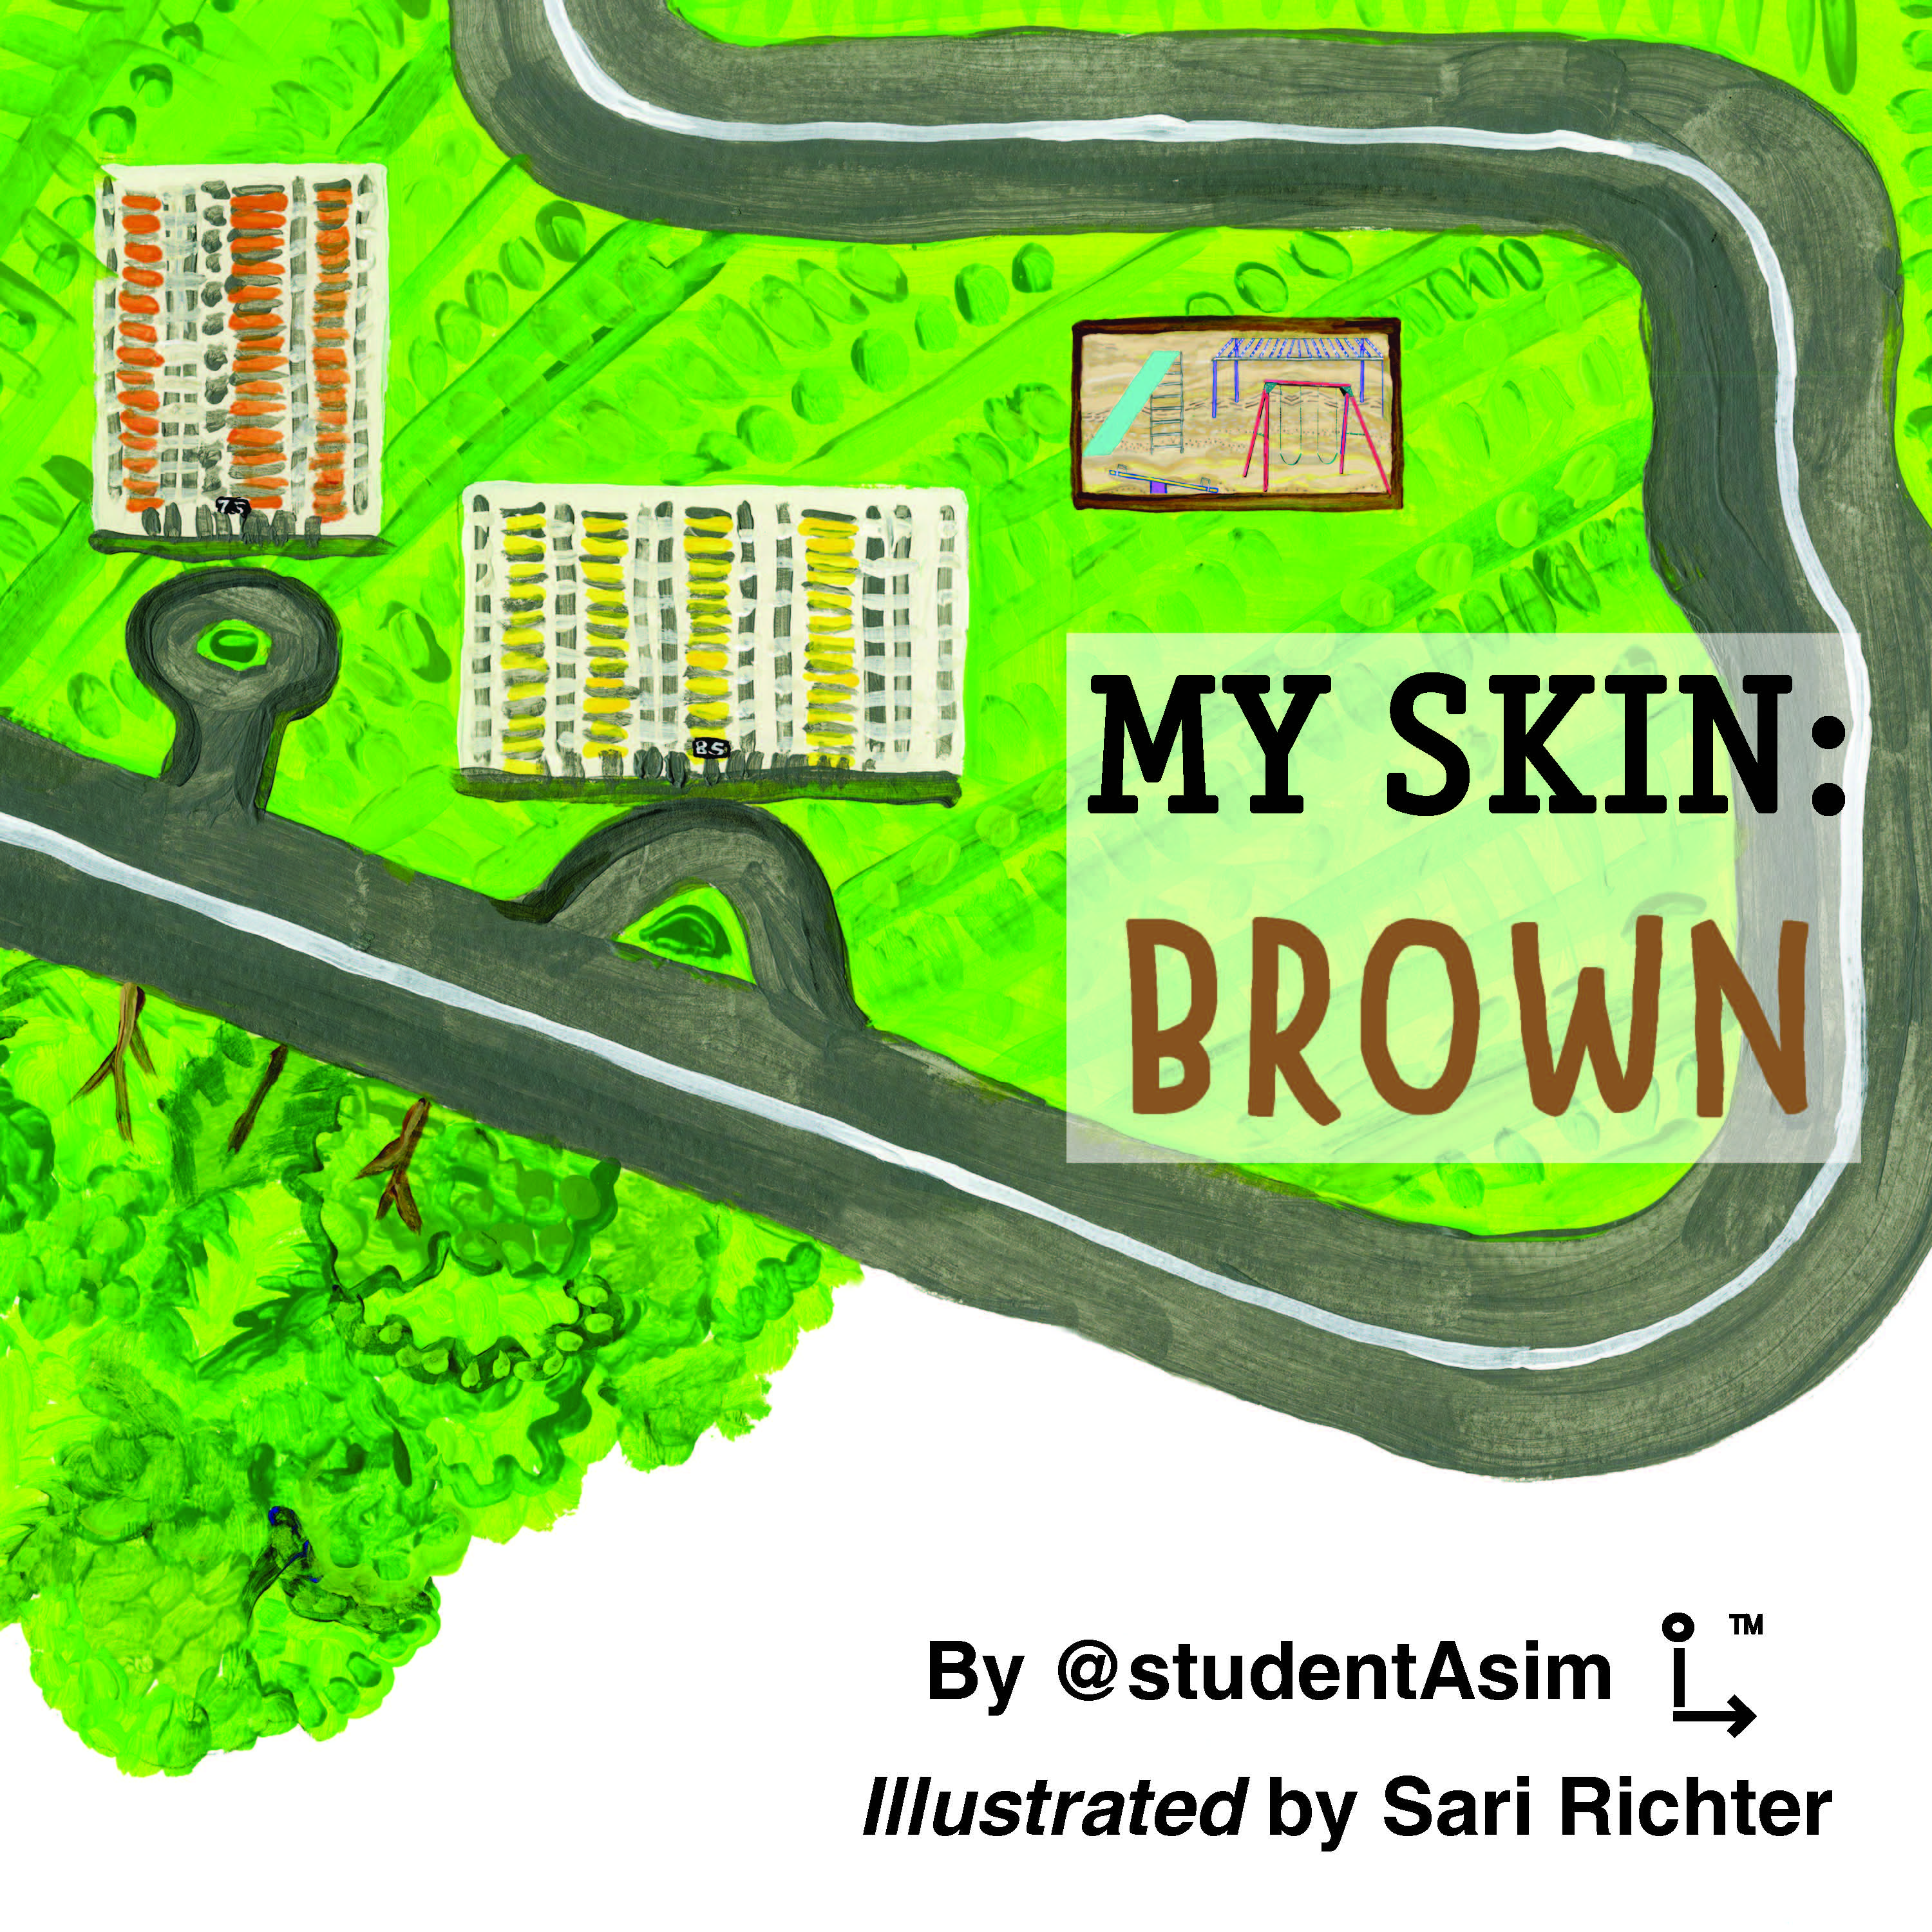 My Skin: Brown art work by @studentAsim